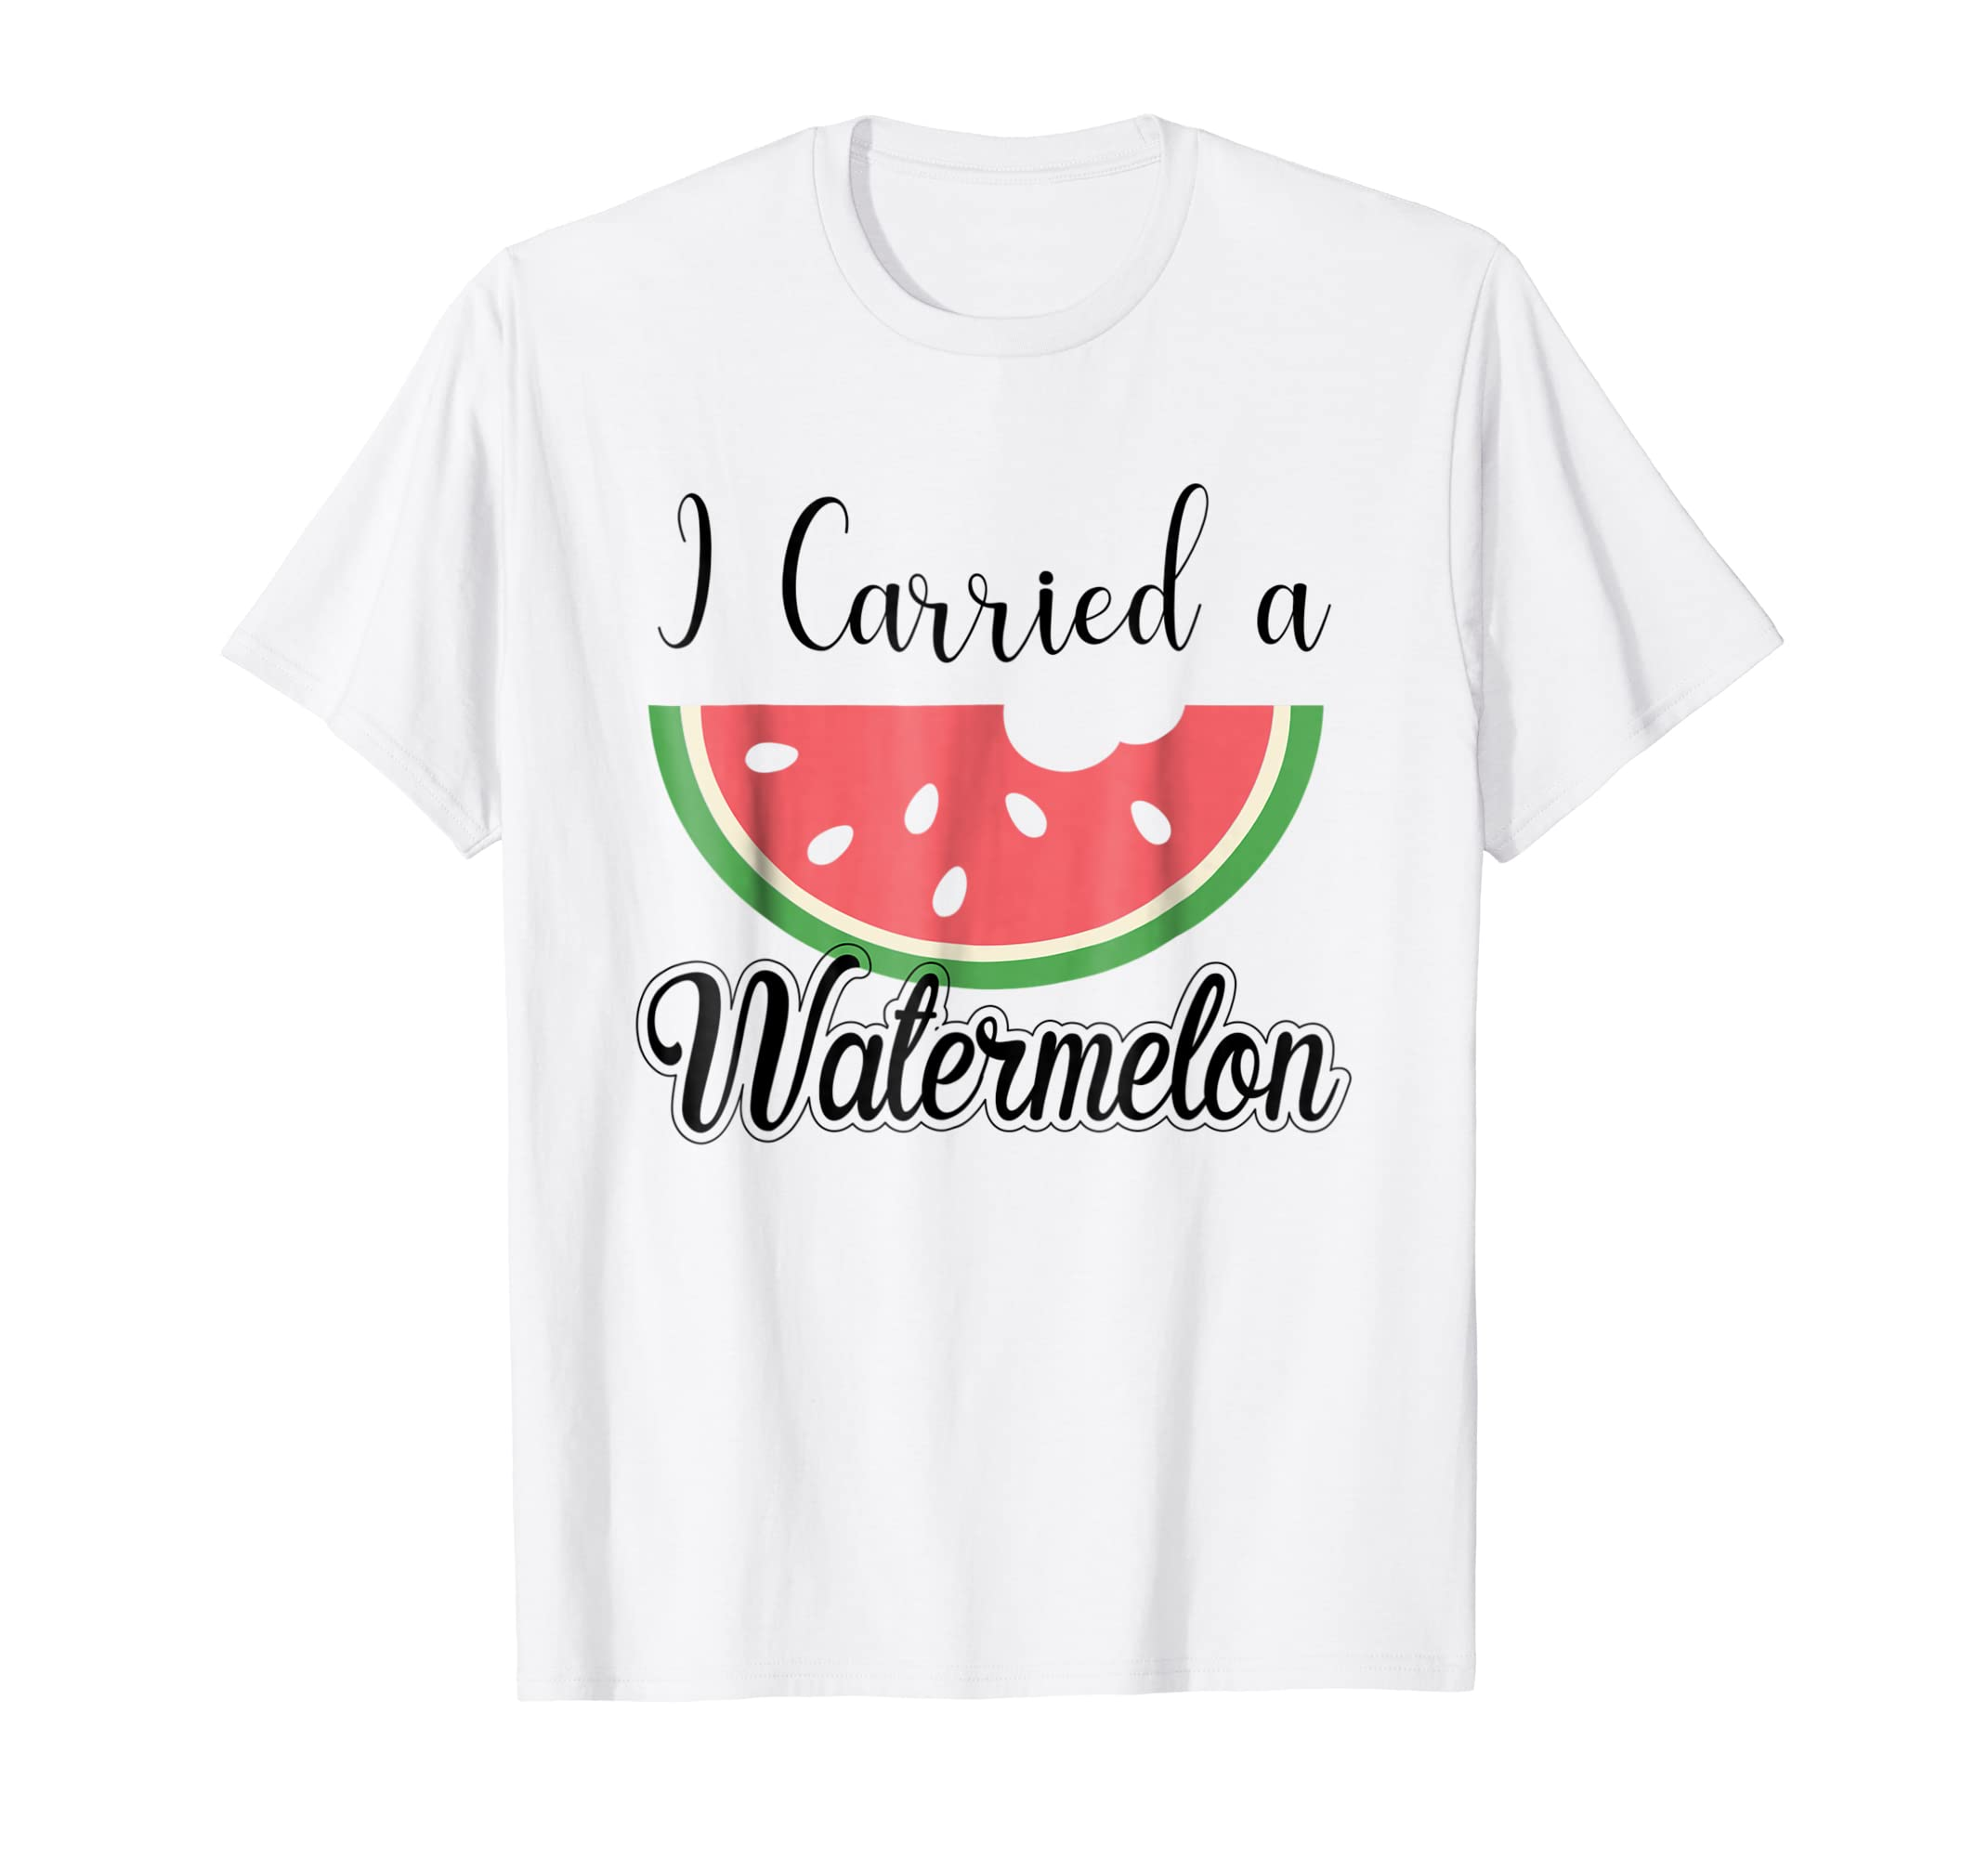 cd6bc03ee Amazon.com: I Carried A Watermelon T Shirt Gifts Mens Womens Festival:  Clothing